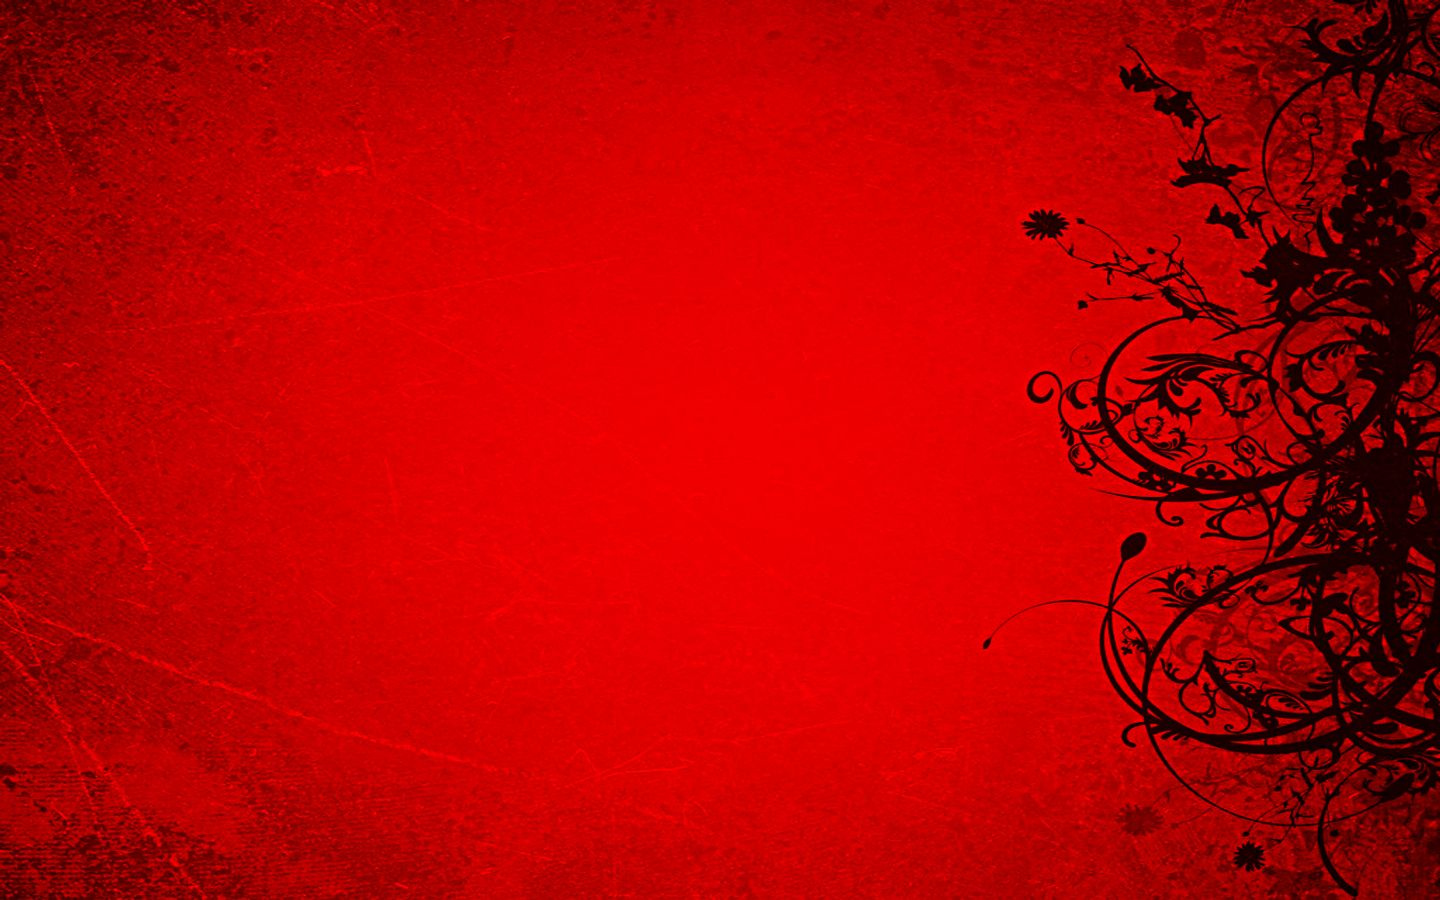 Red Abstract Flare Background X 170755 Wallpaper wallpaper